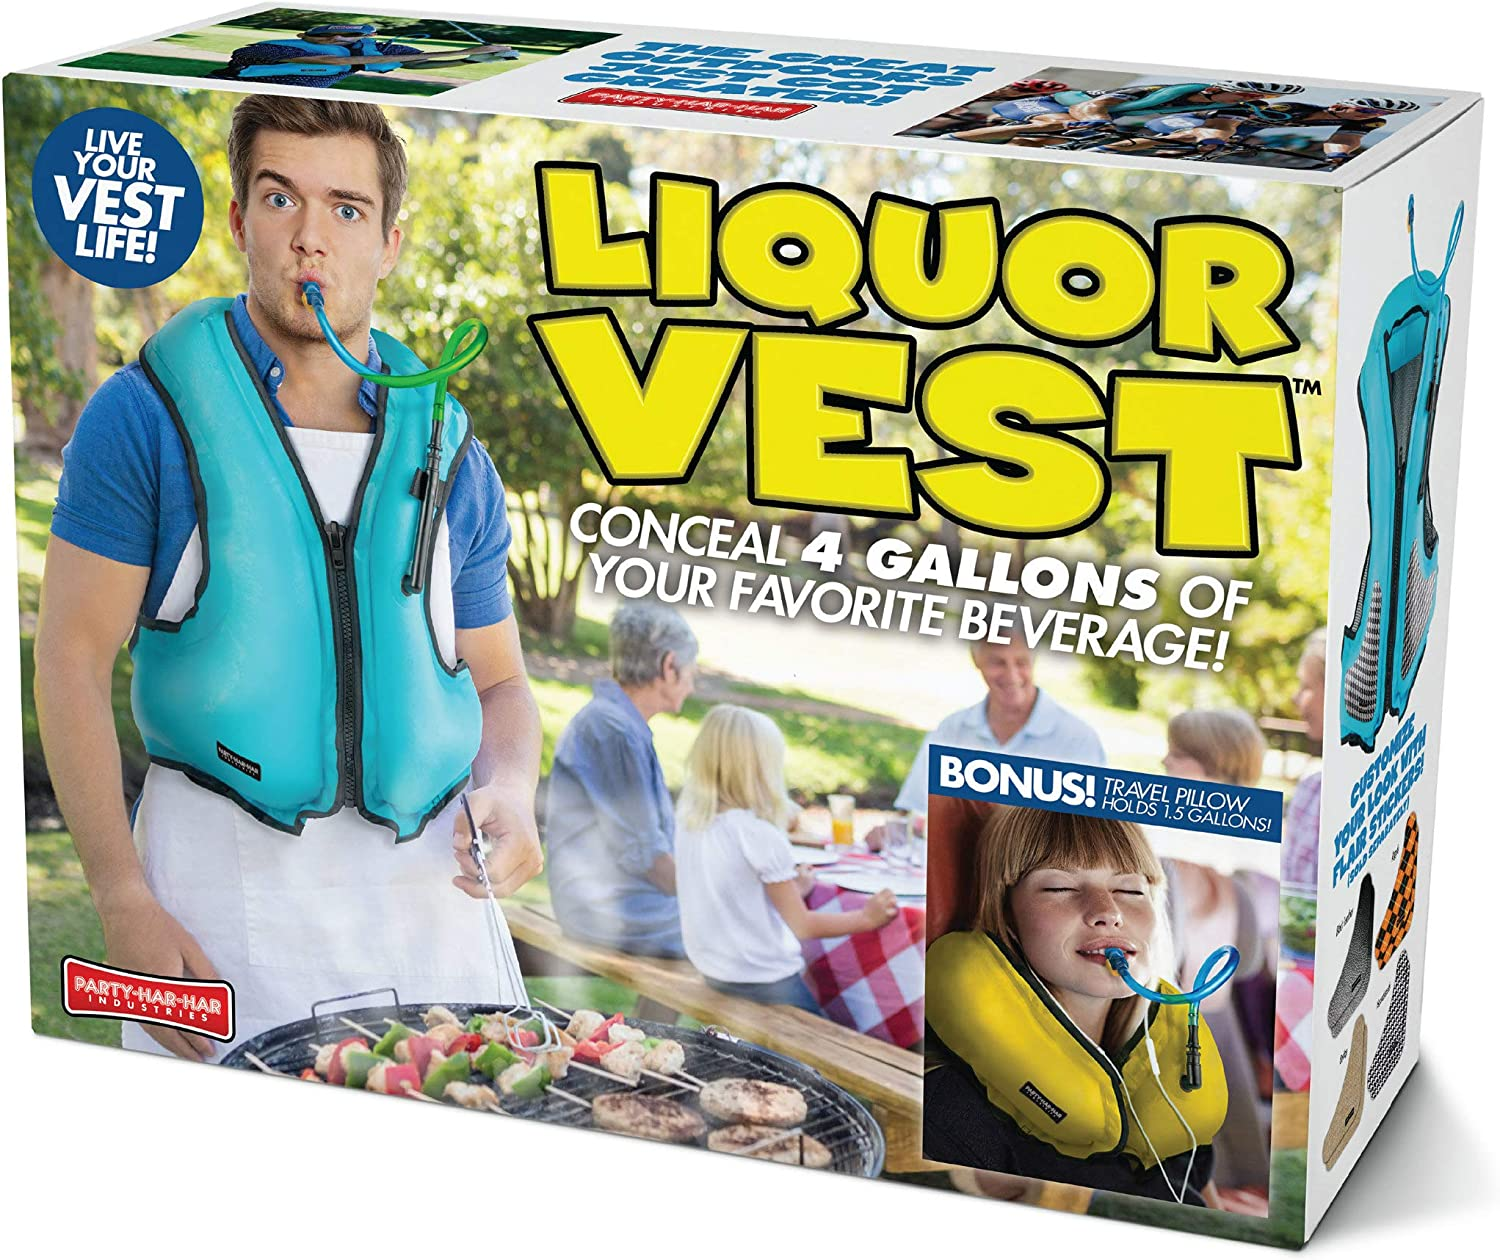 Prank Pack   Wrap Your Real Gift in a Prank Funny Gag Joke Gift Box - by Prank-O - The Original Prank Gift Box   Awesome Novelty Gift Box for Any Adult or Kid! (Liquor Vest)